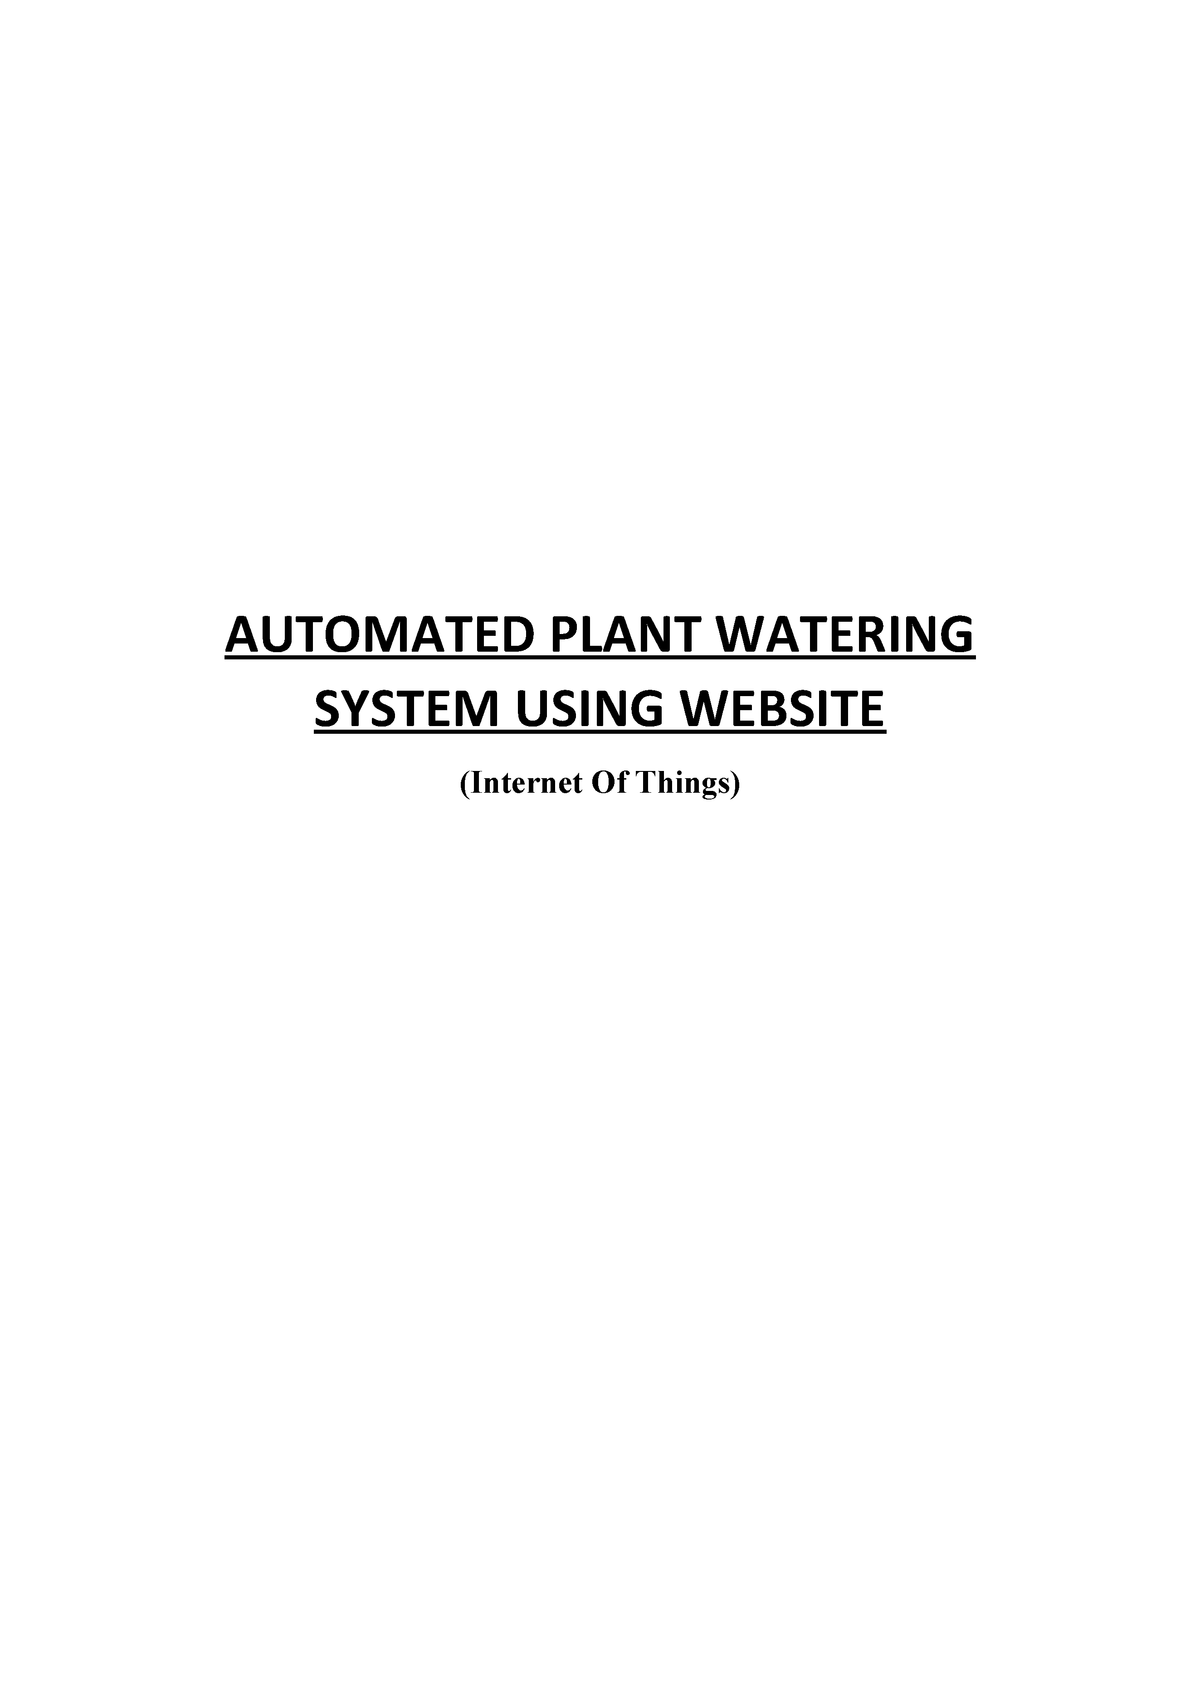 Project AUTOMATED PLANT WATERING SYSTEM USING WEBSITE (Internet Of